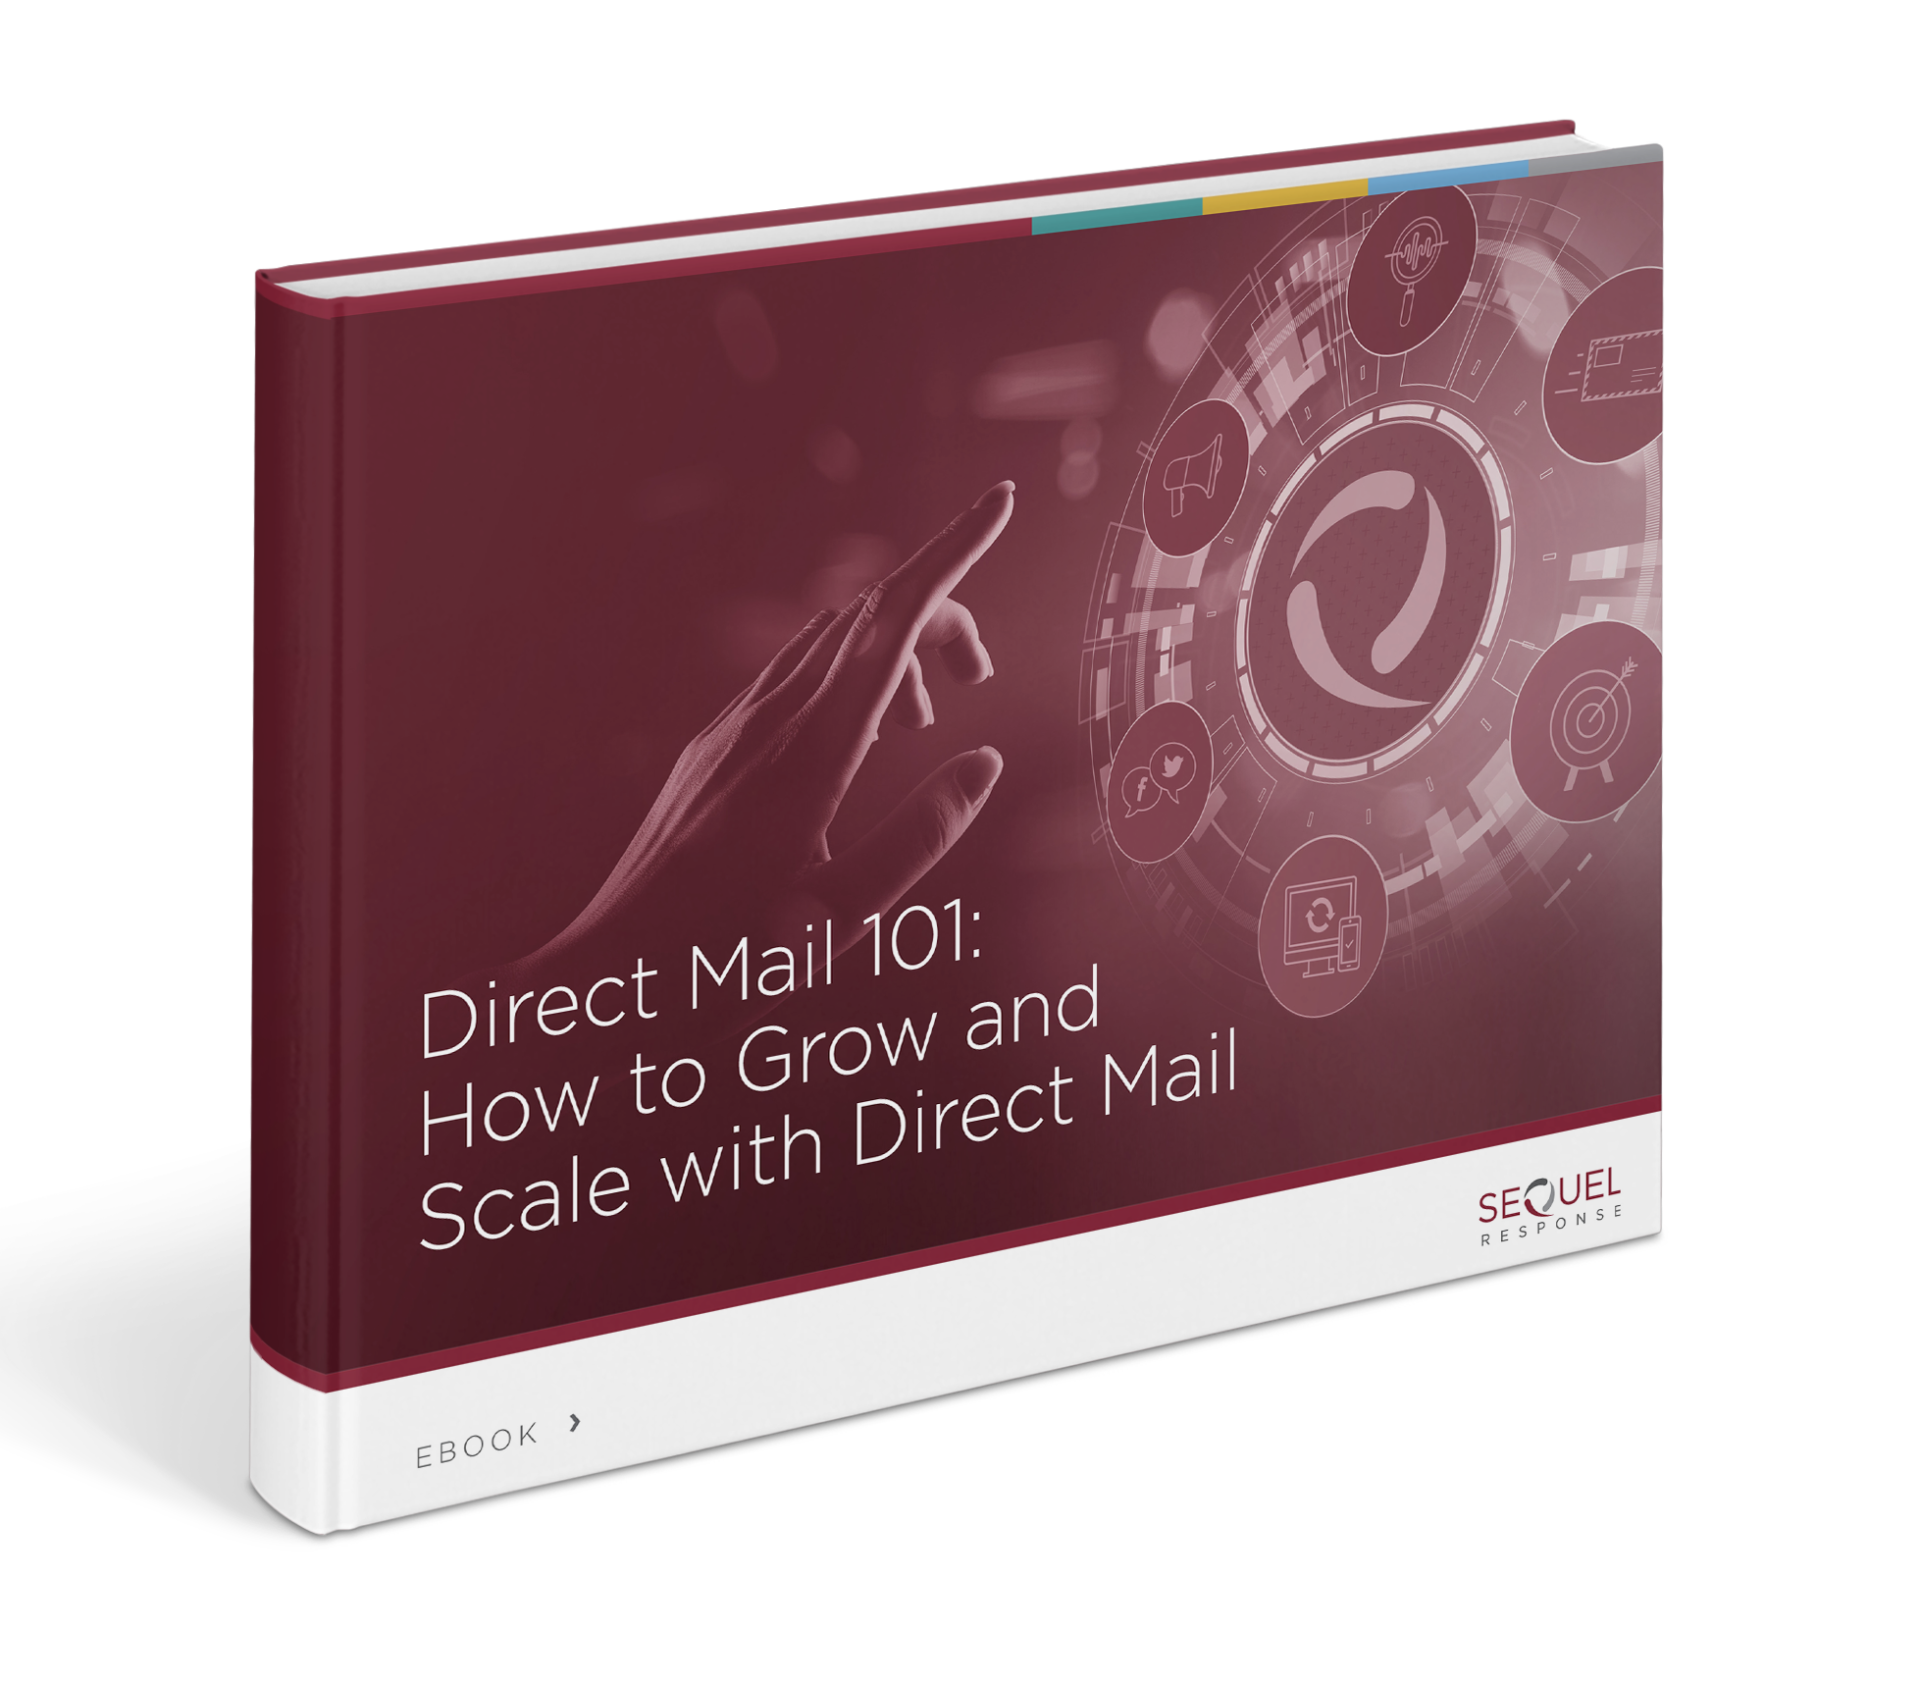 e-book Cover Image: Direct Mail 101